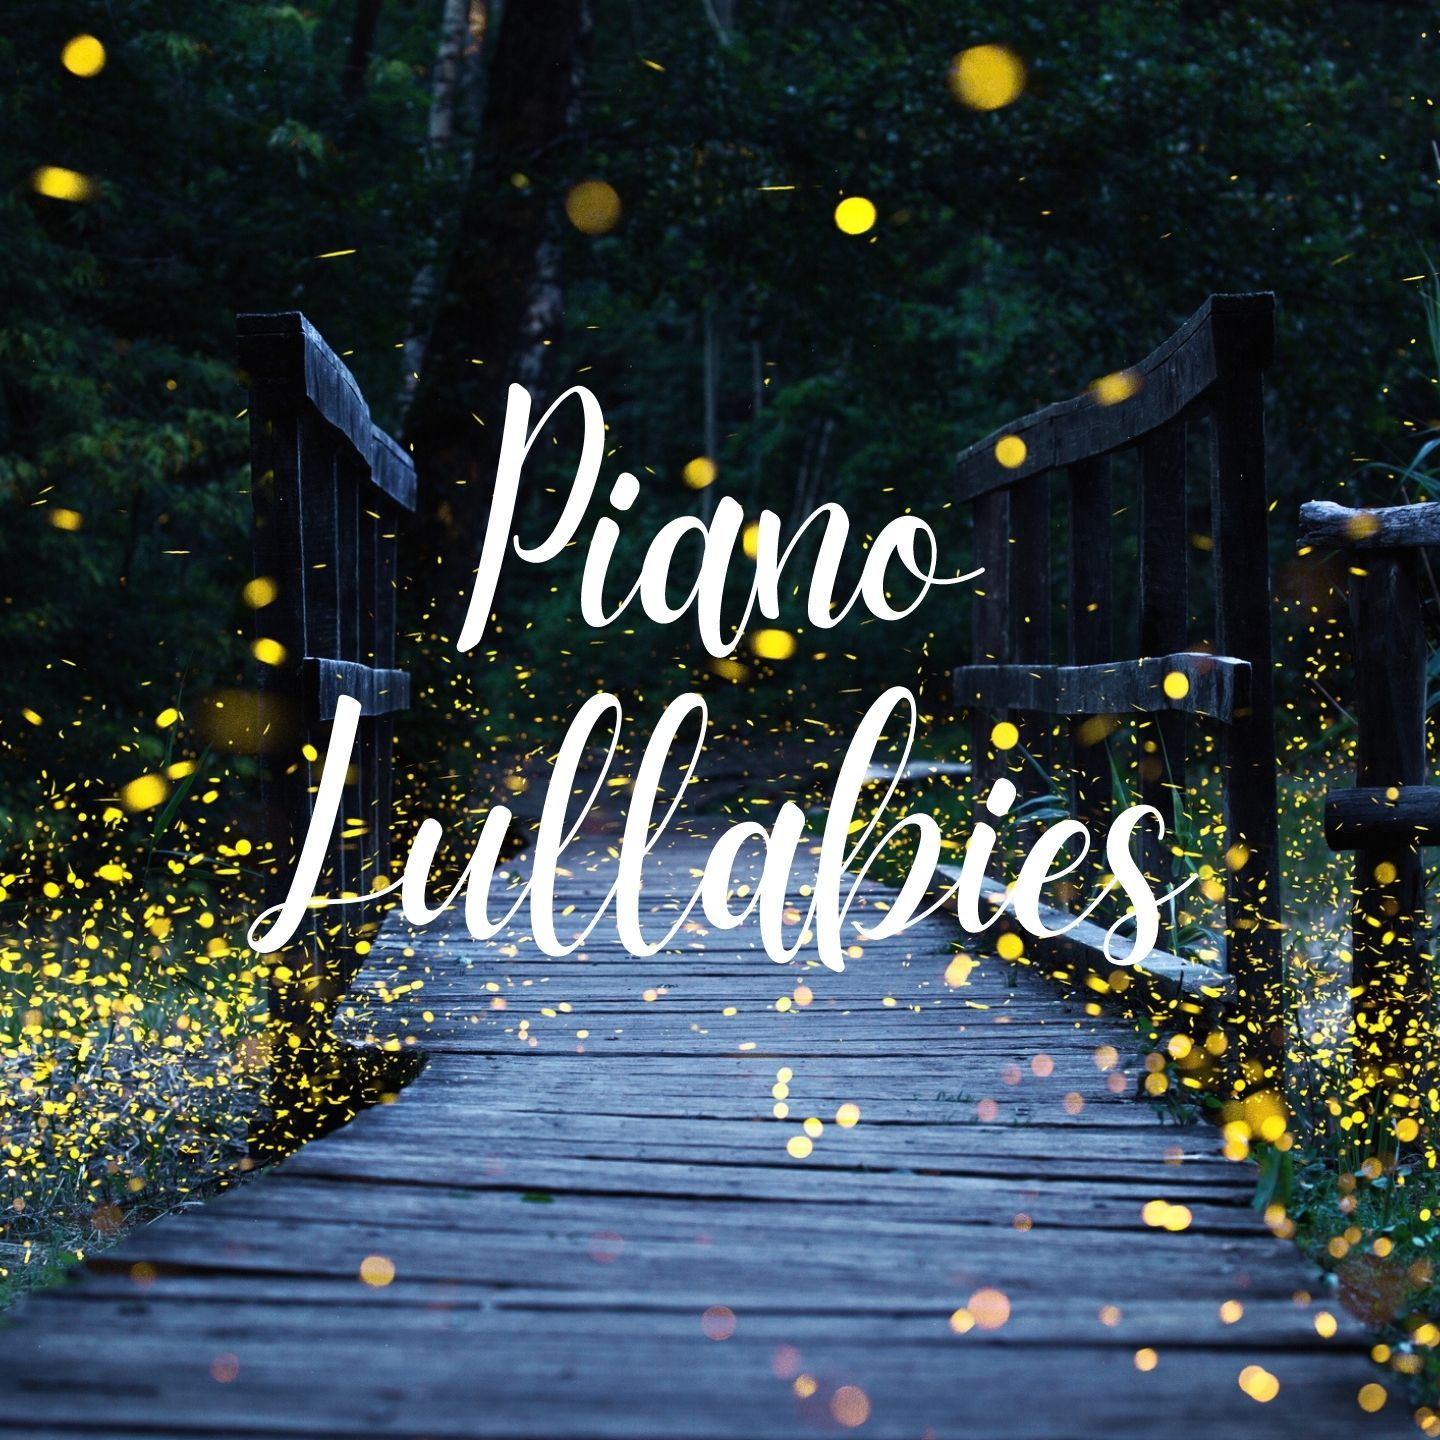 Piano Lullabies - Piano Music for Sleeping & Relaxation